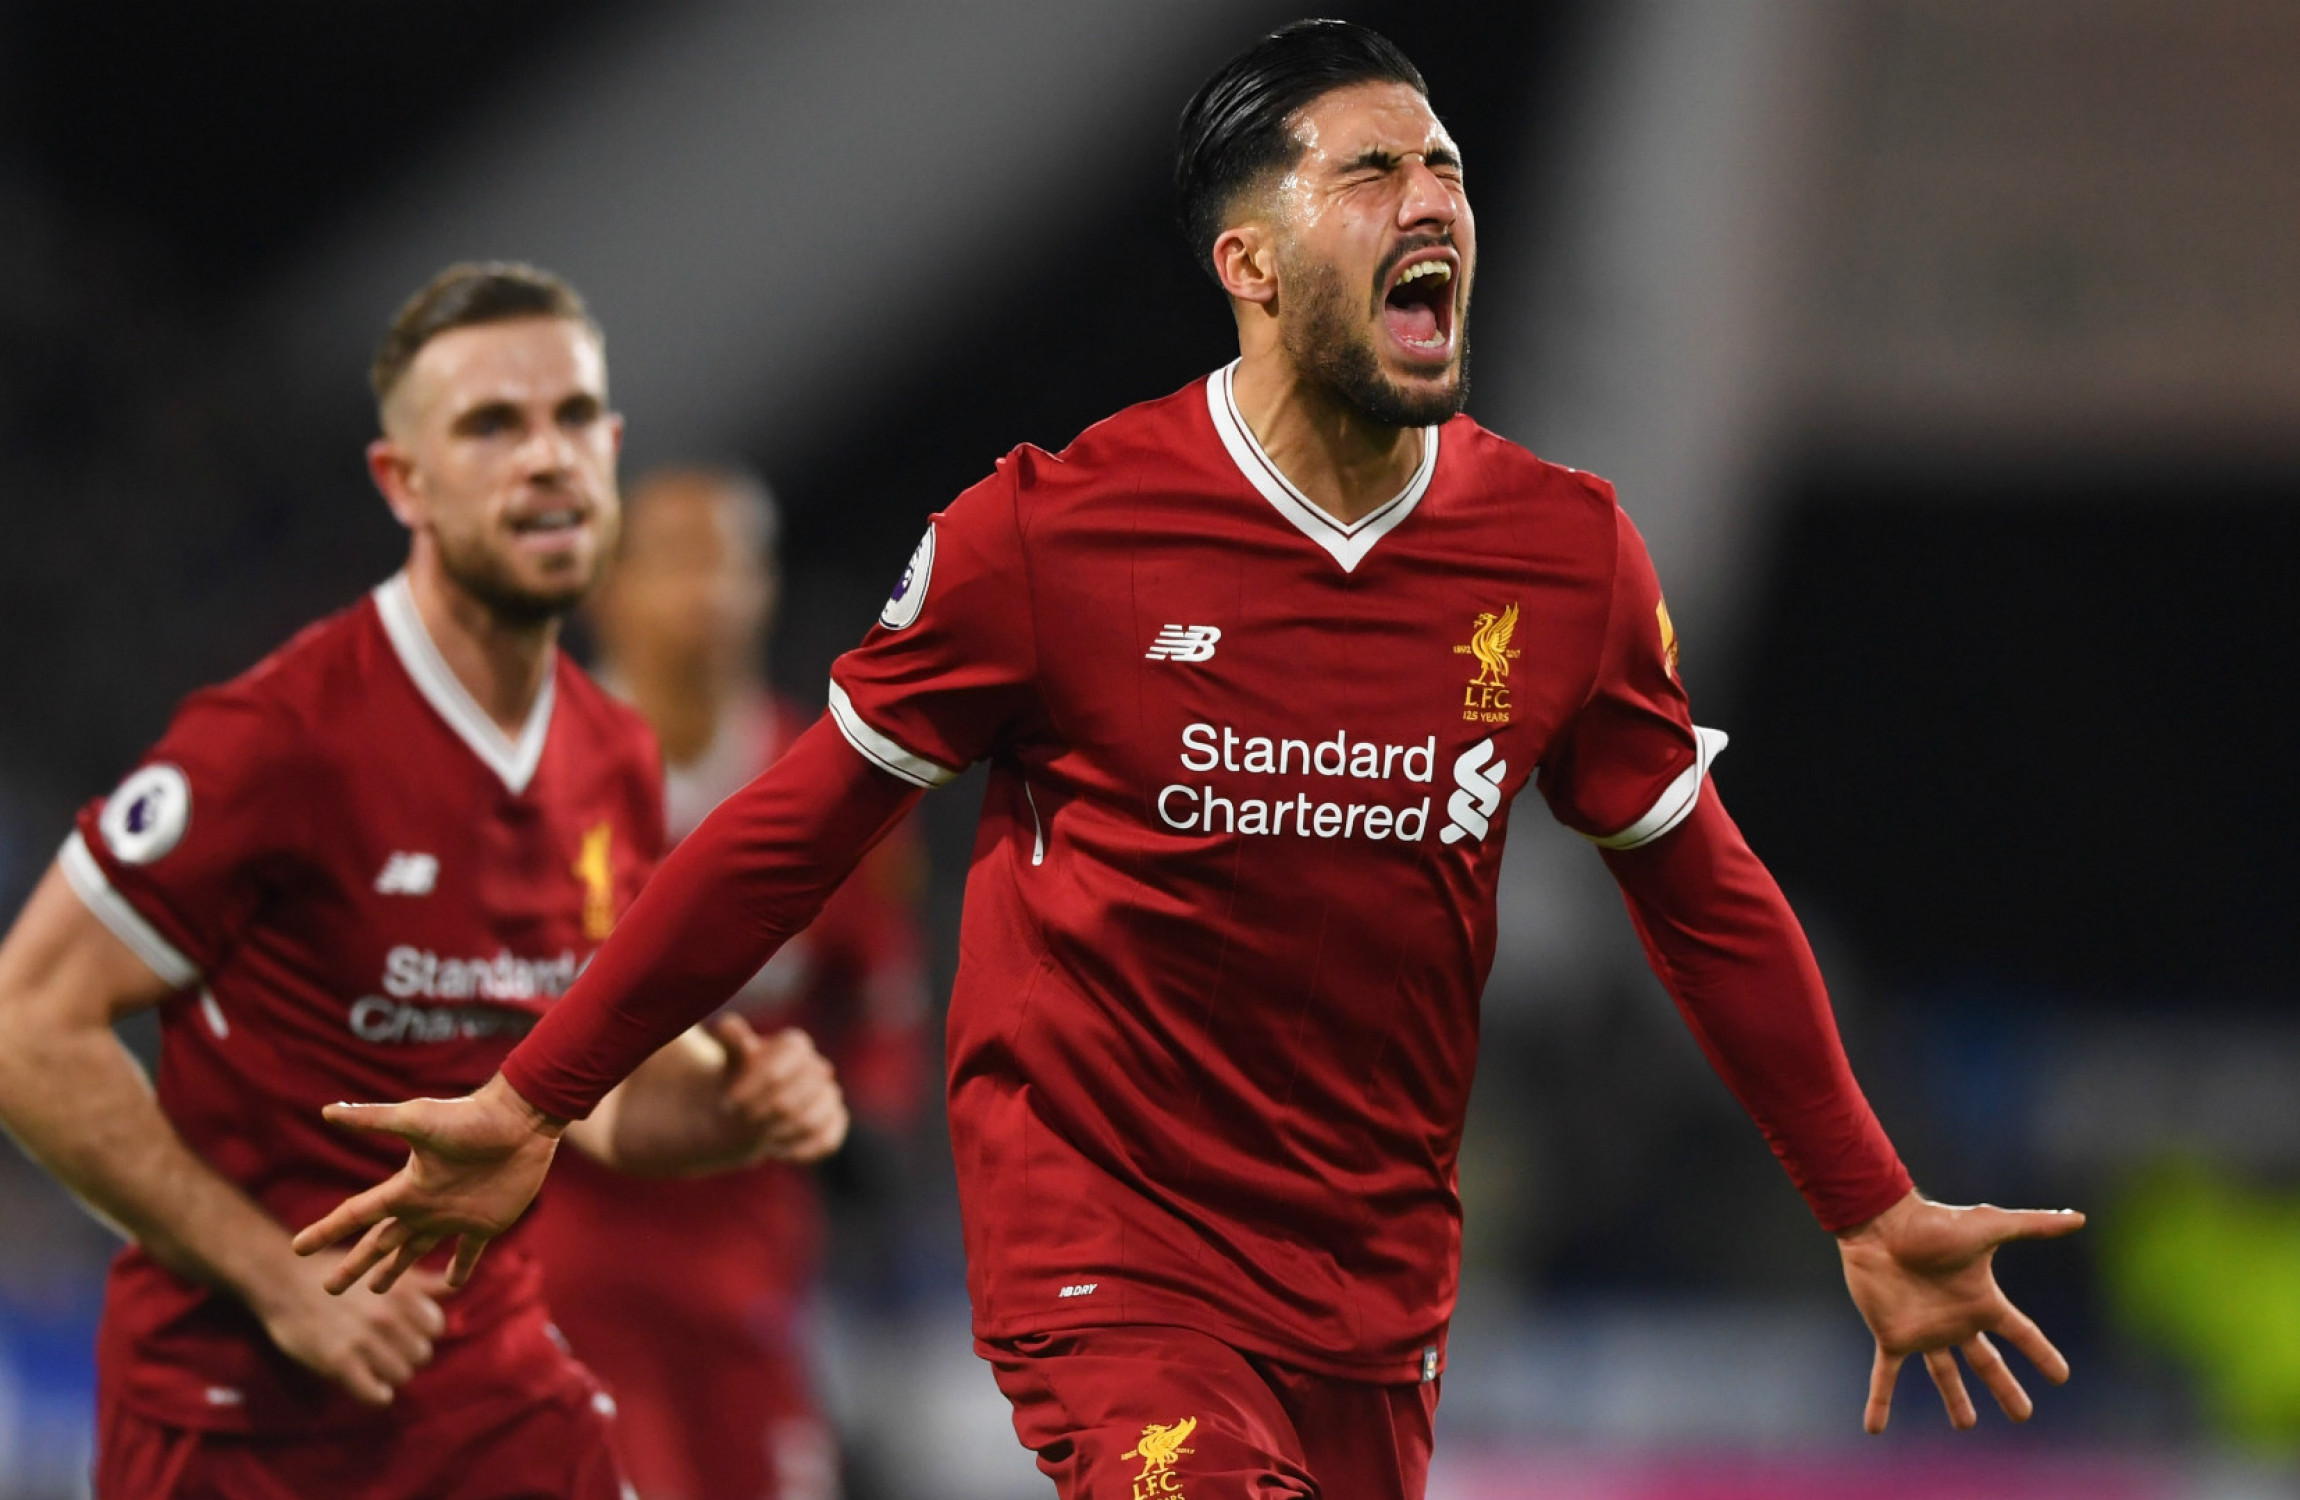 Emre Can slams 'false' Liverpool contract claims